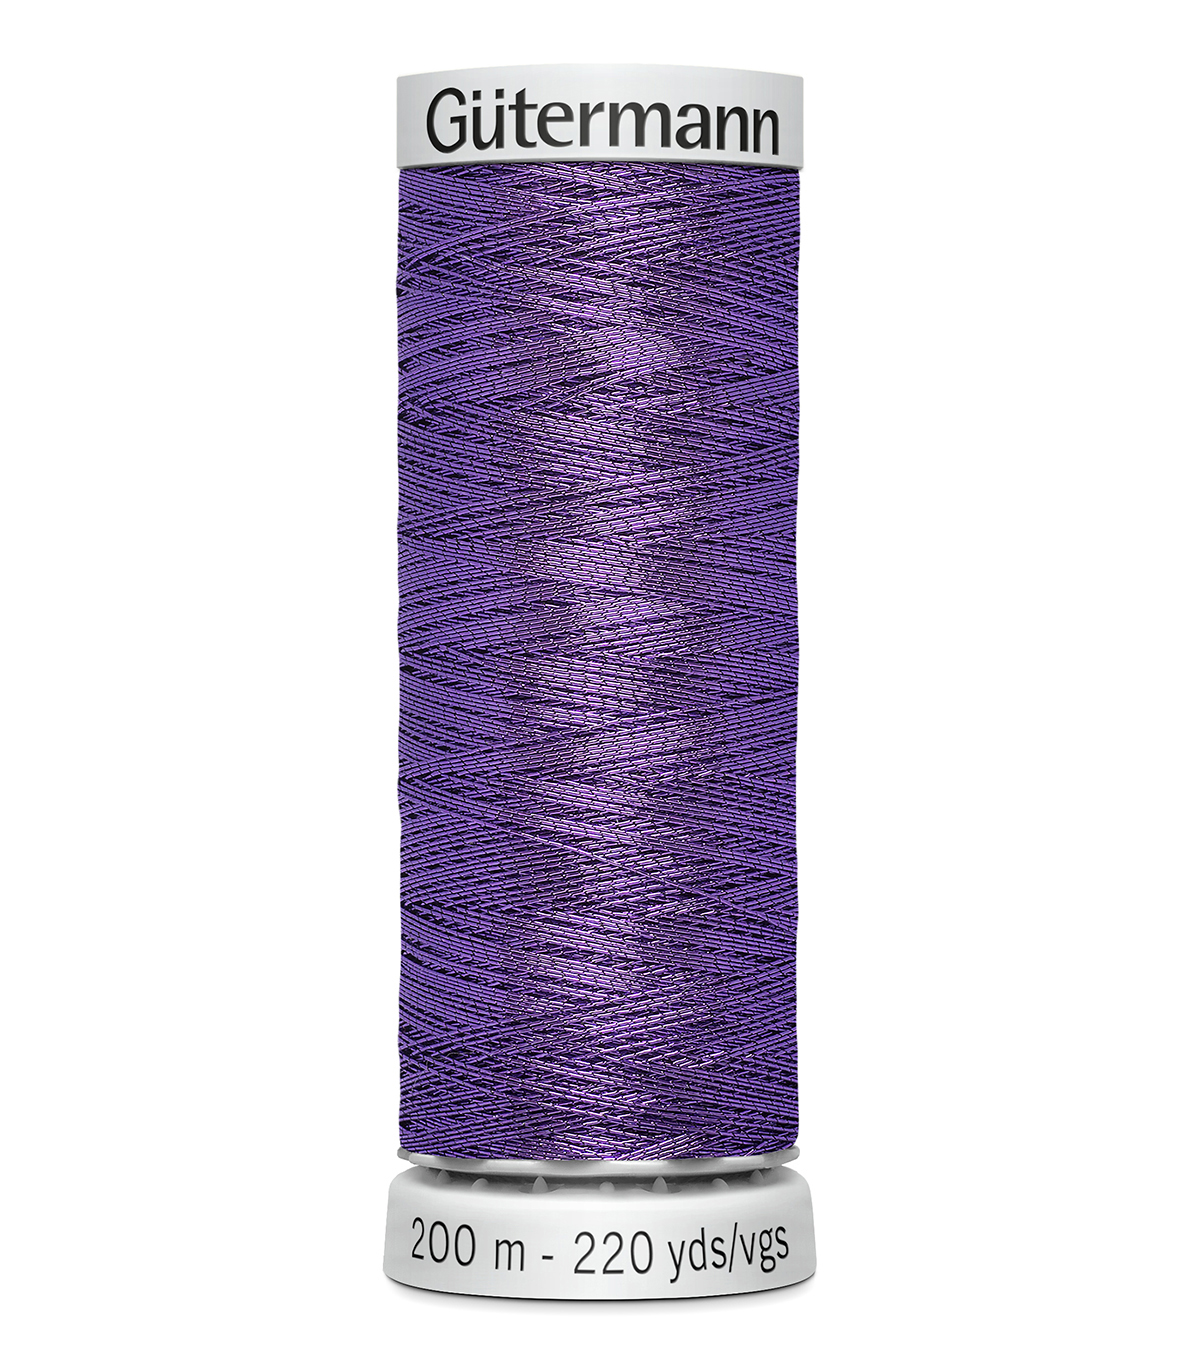 Gutermann 200M Dekor Thread, 200m Dekor Metallic-purple